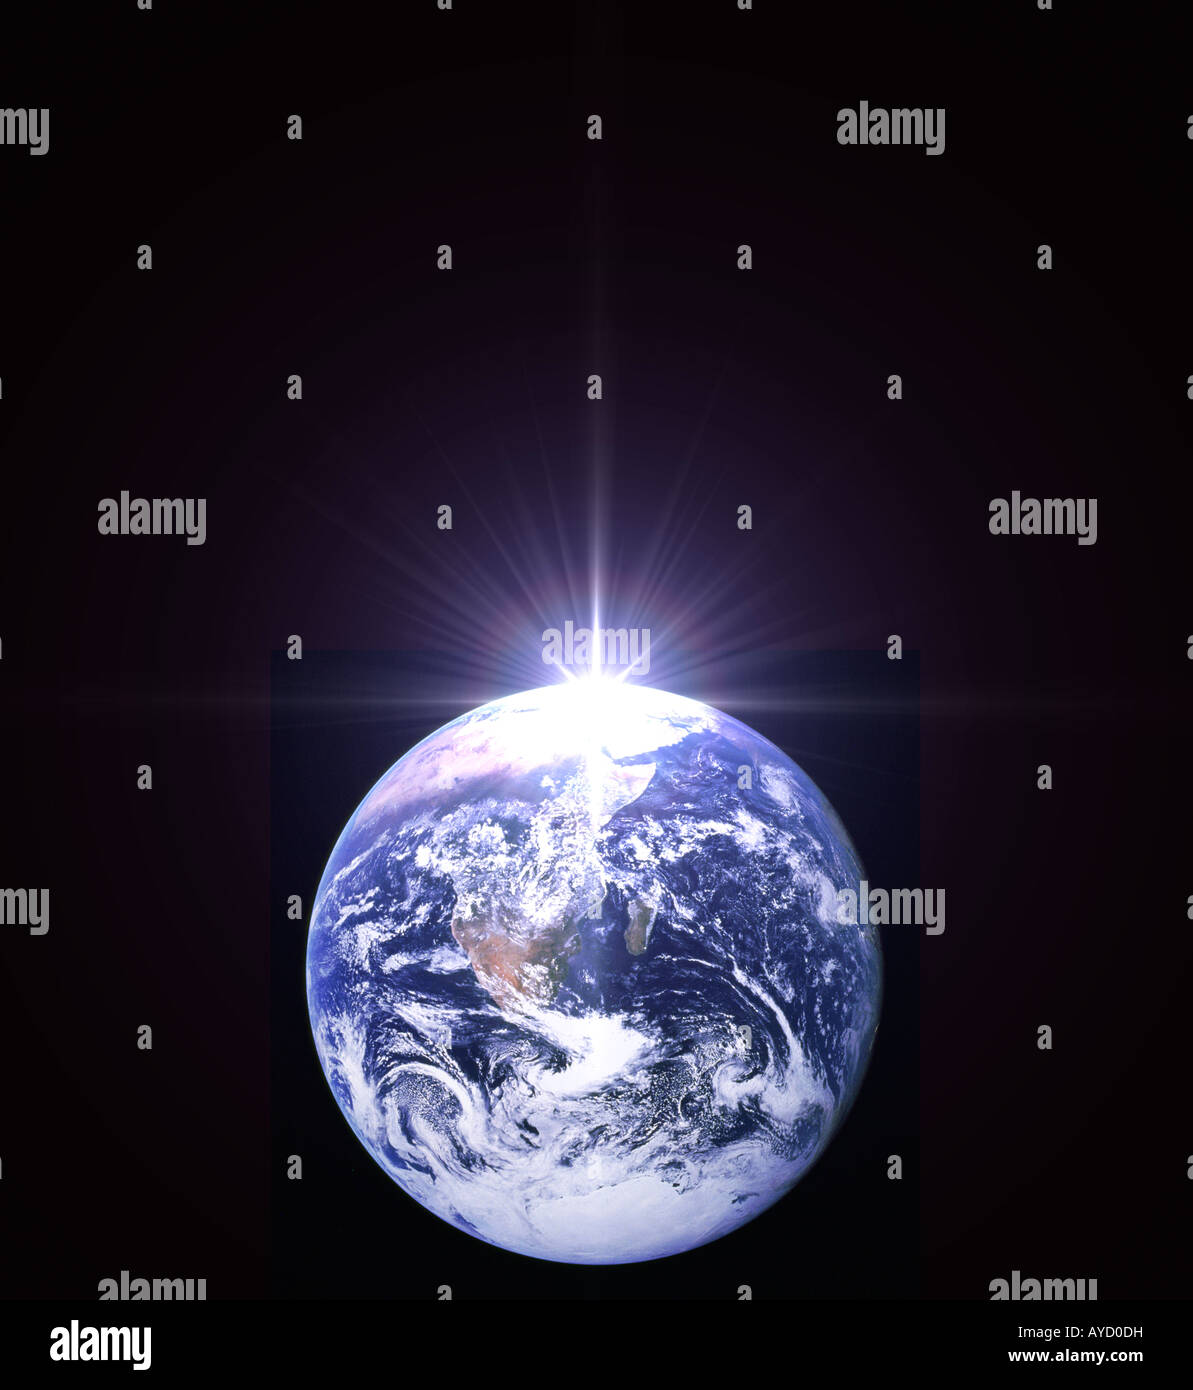 NASA view of earth from outer space with digitally altered bright star - Stock Image